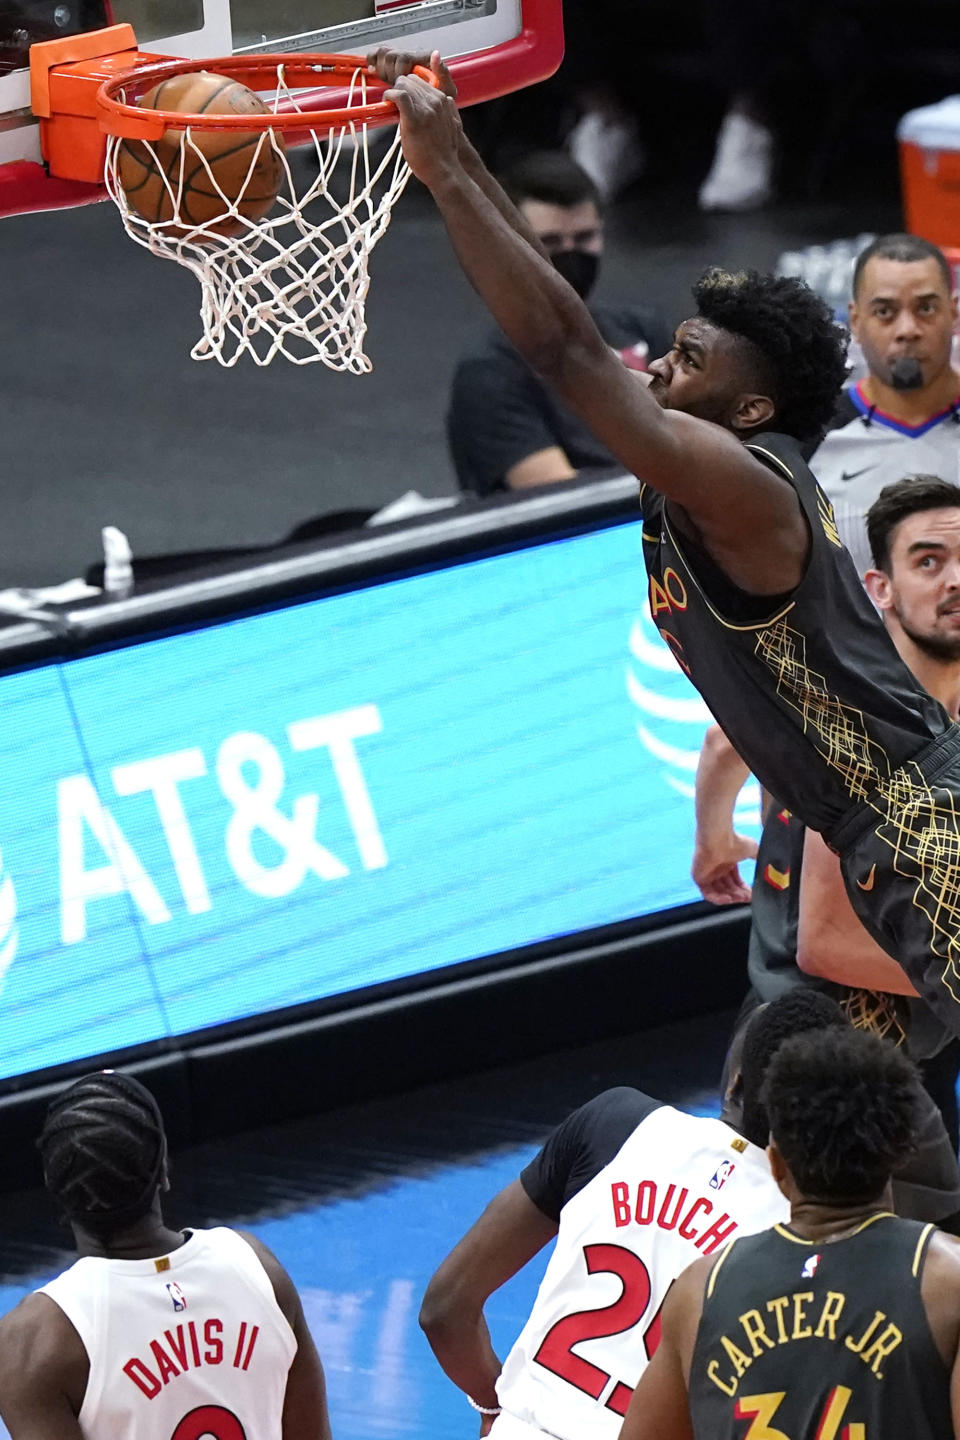 Chicago Bulls forward Patrick Williams, top, dunks as Toronto Raptors guard Terence Davis, left, and forward Chris Boucher watch during the second half of an NBA basketball game in Chicago, Sunday, March 14, 2021. (AP Photo/Nam Y. Huh)